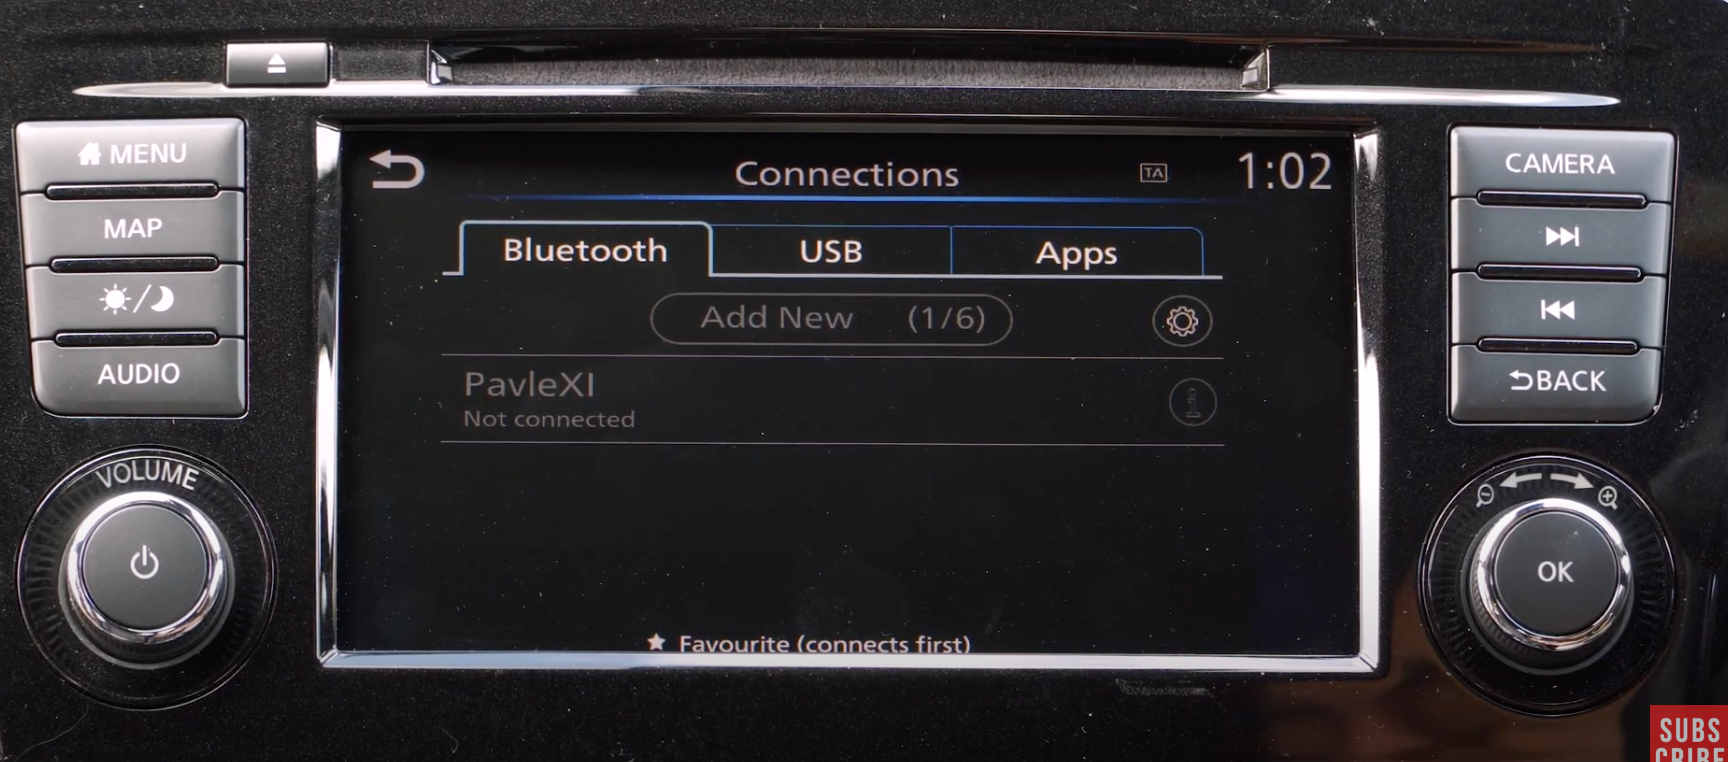 Connectivity screen where a user can set up Bluetooth